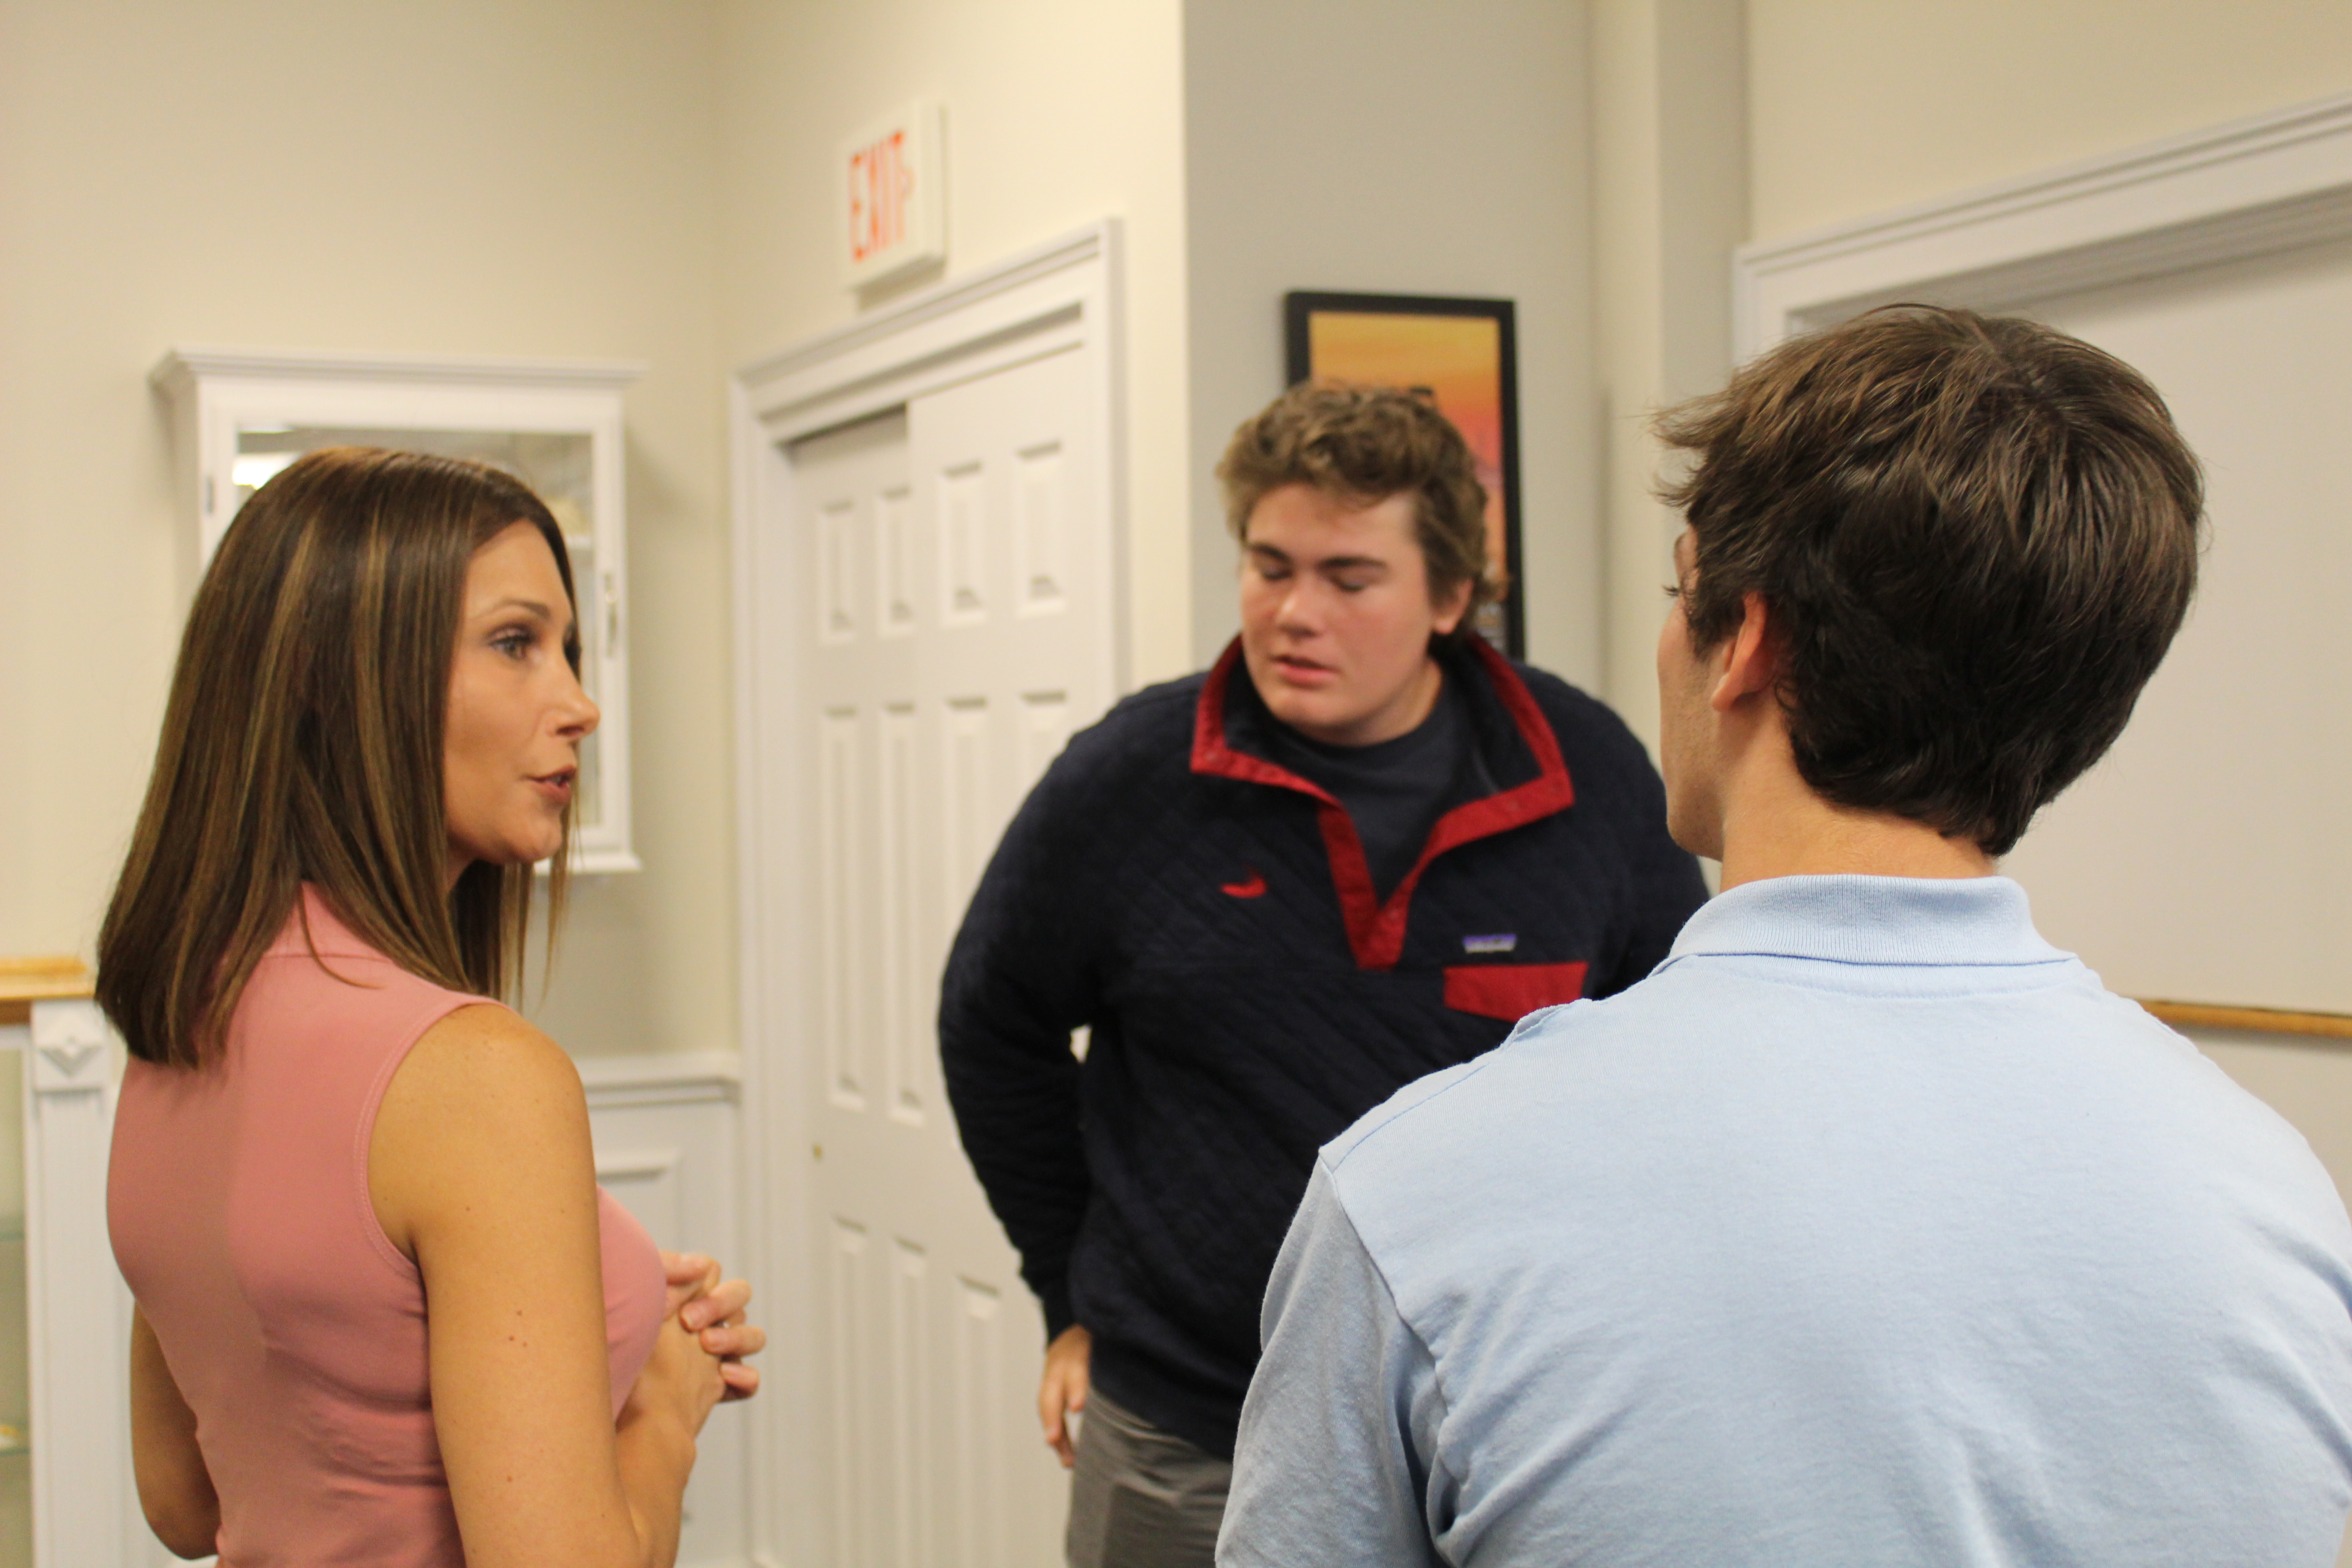 Talking to perspective students at open house